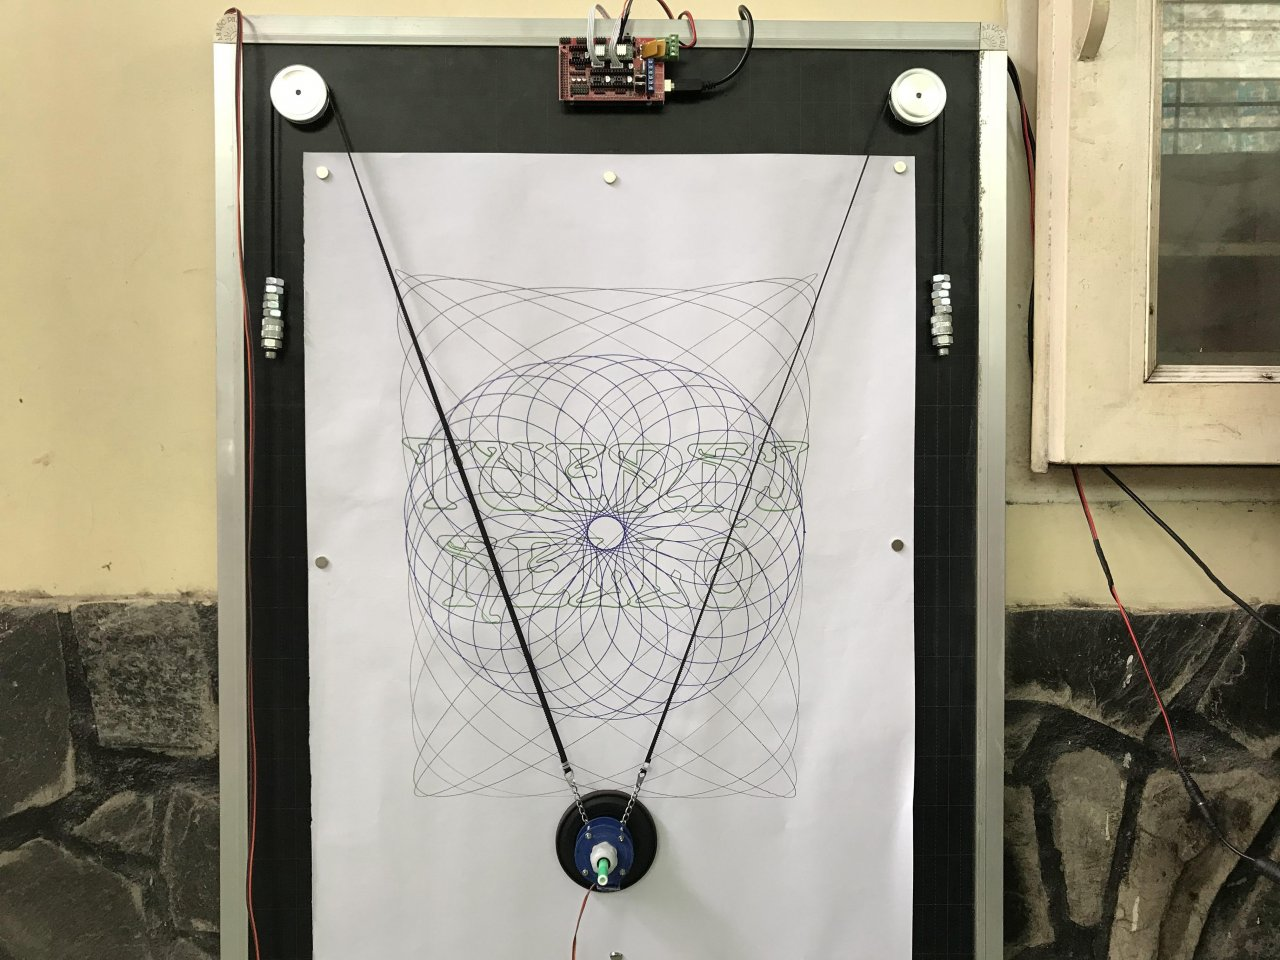 Vertical plotter for drawing on large-format paper